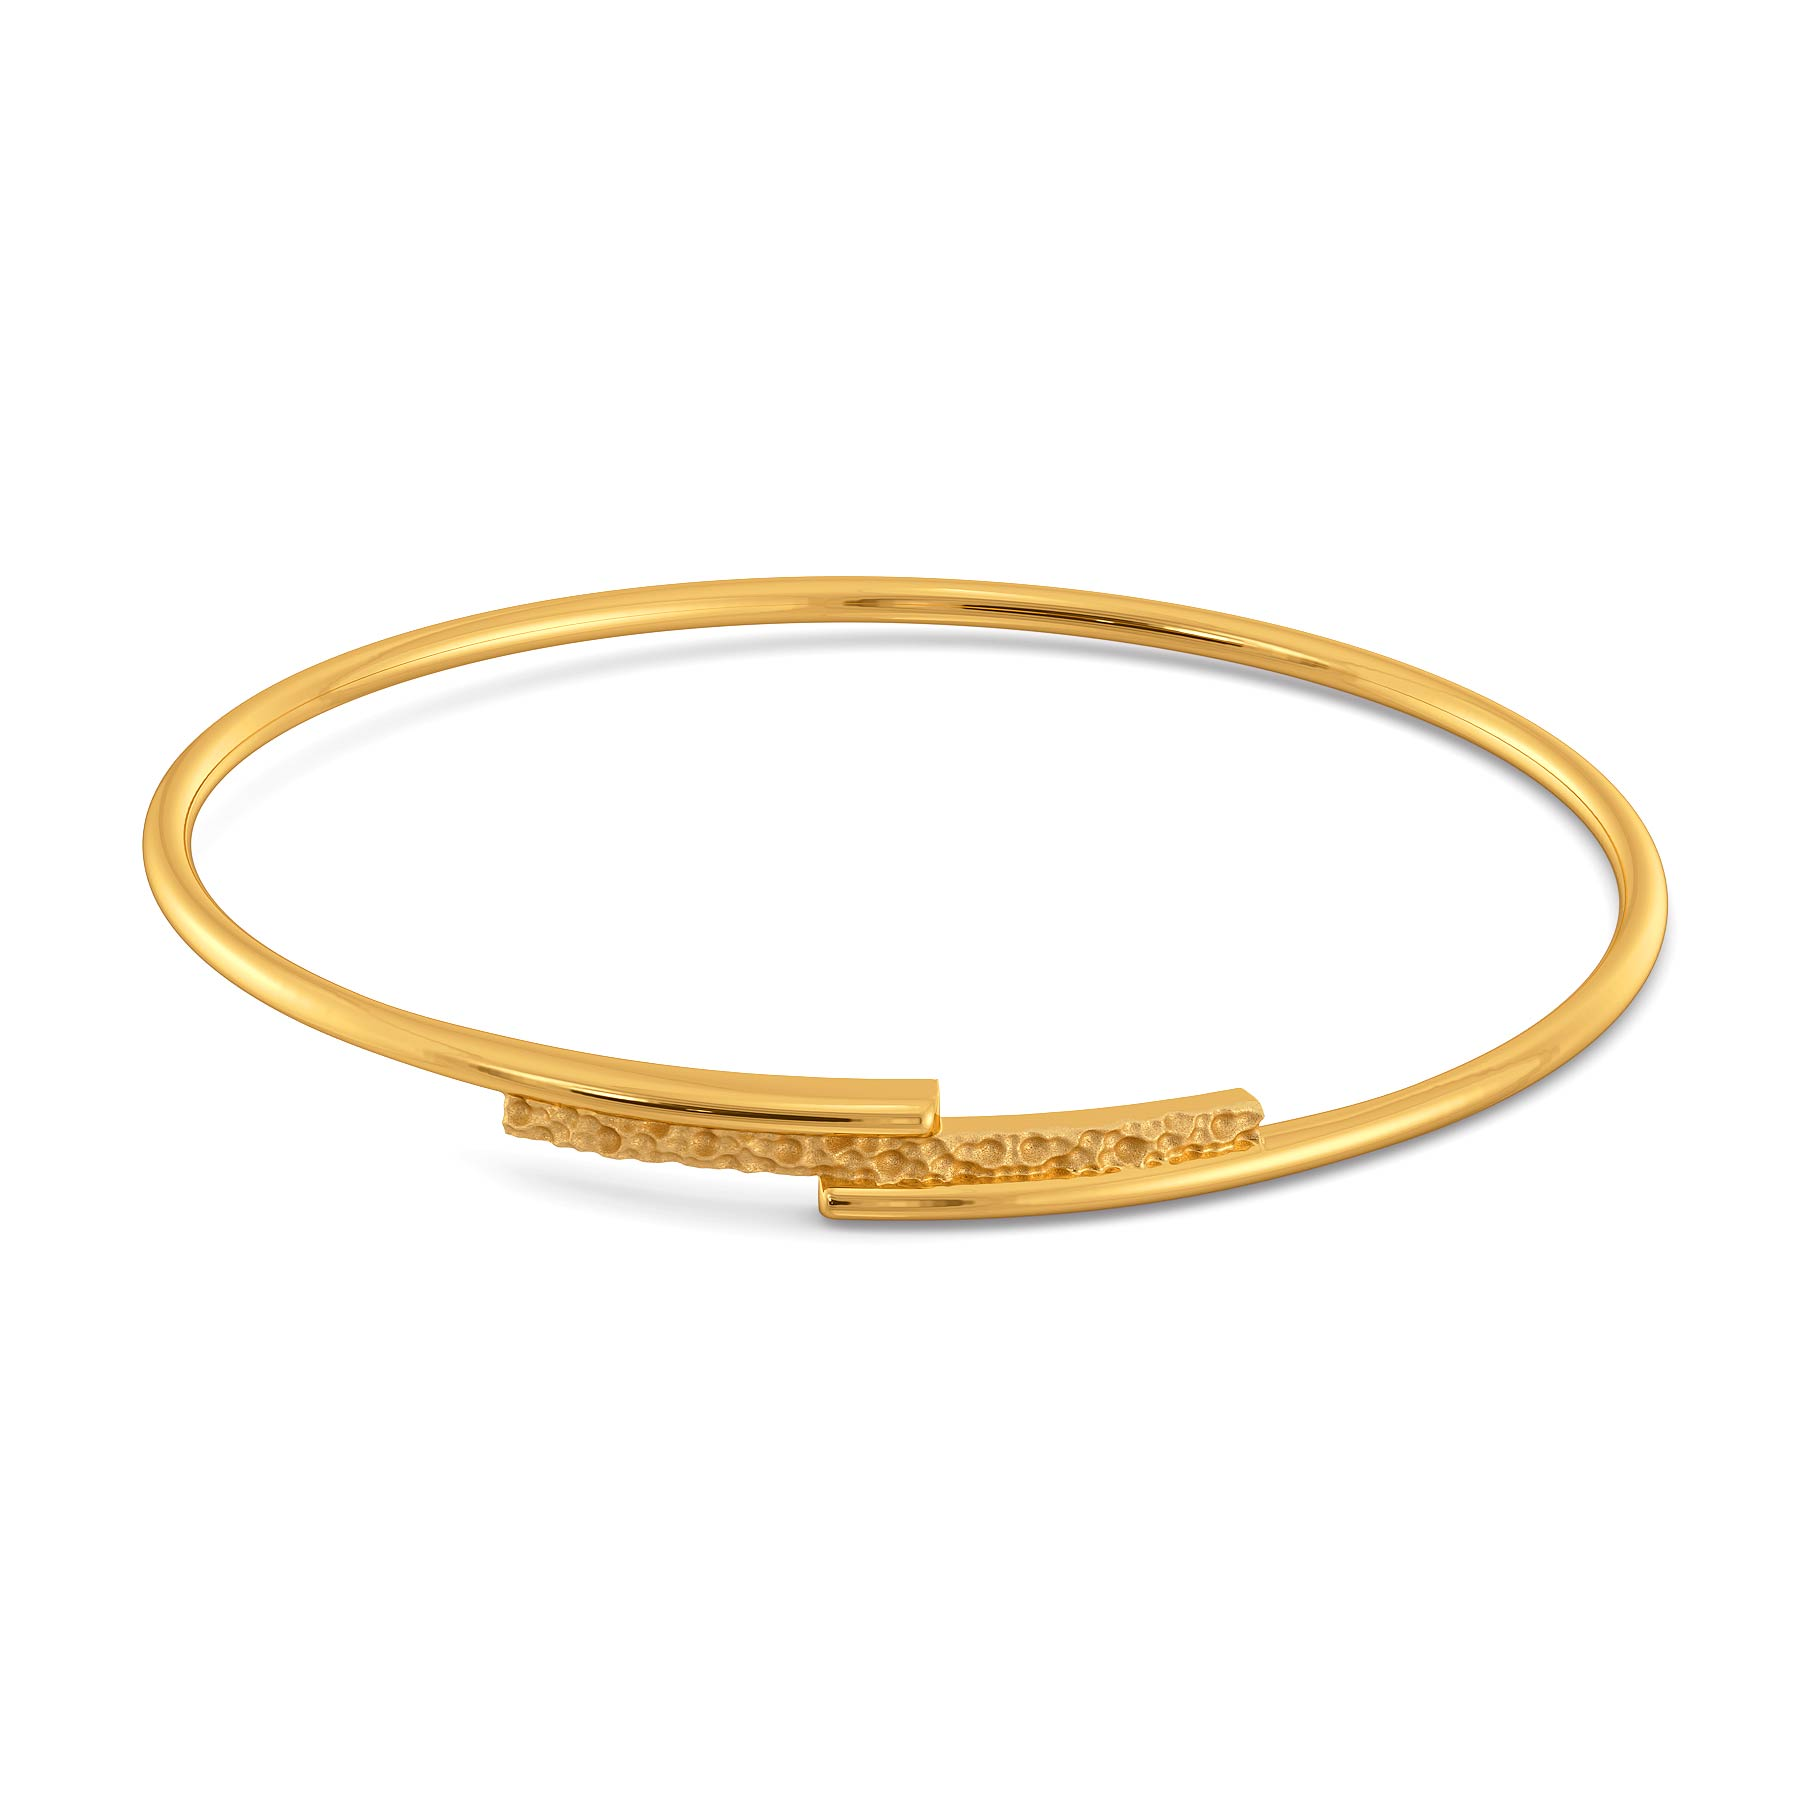 Eclectic Edge Gold Bangles